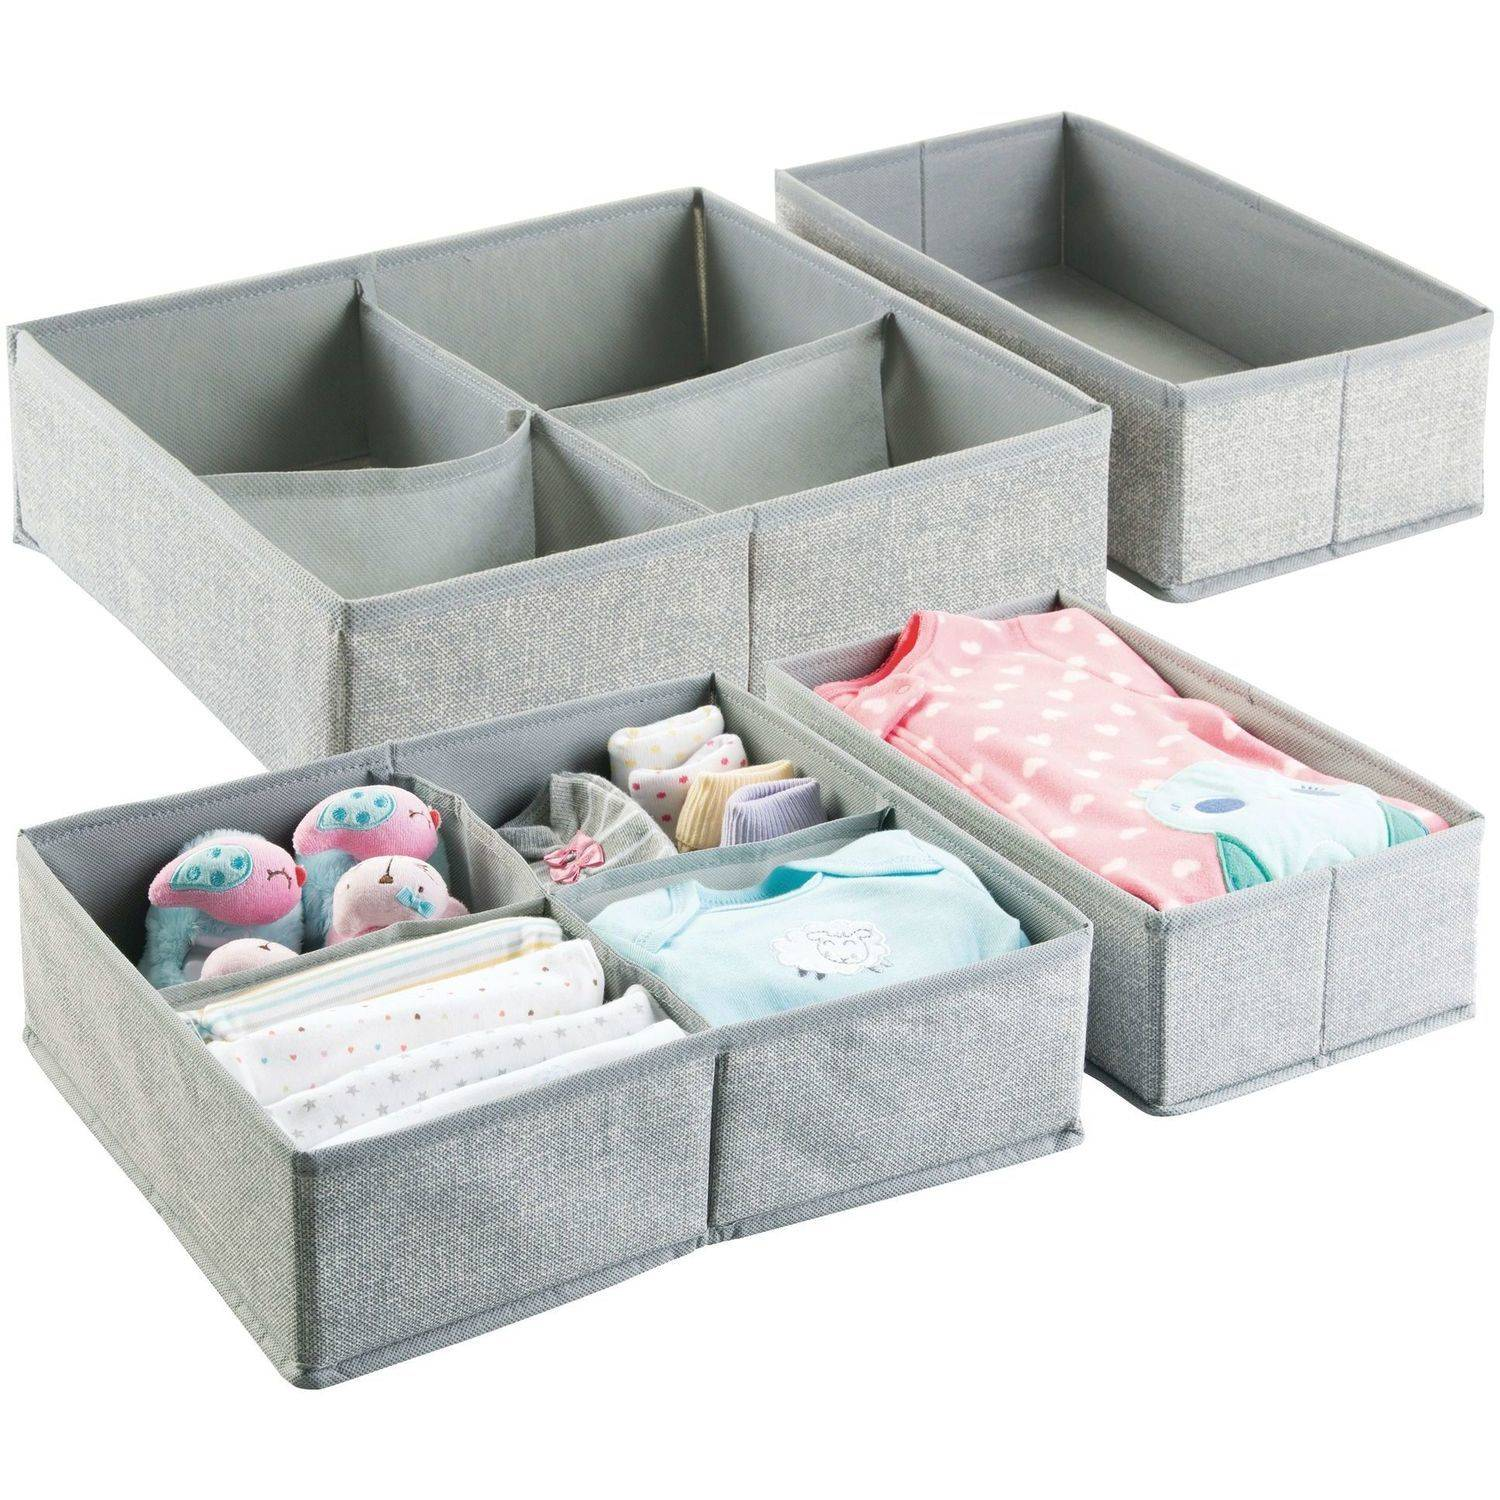 InterDesign Aldo Drawer Organizer, 5S (Set of 2), Large, Grey